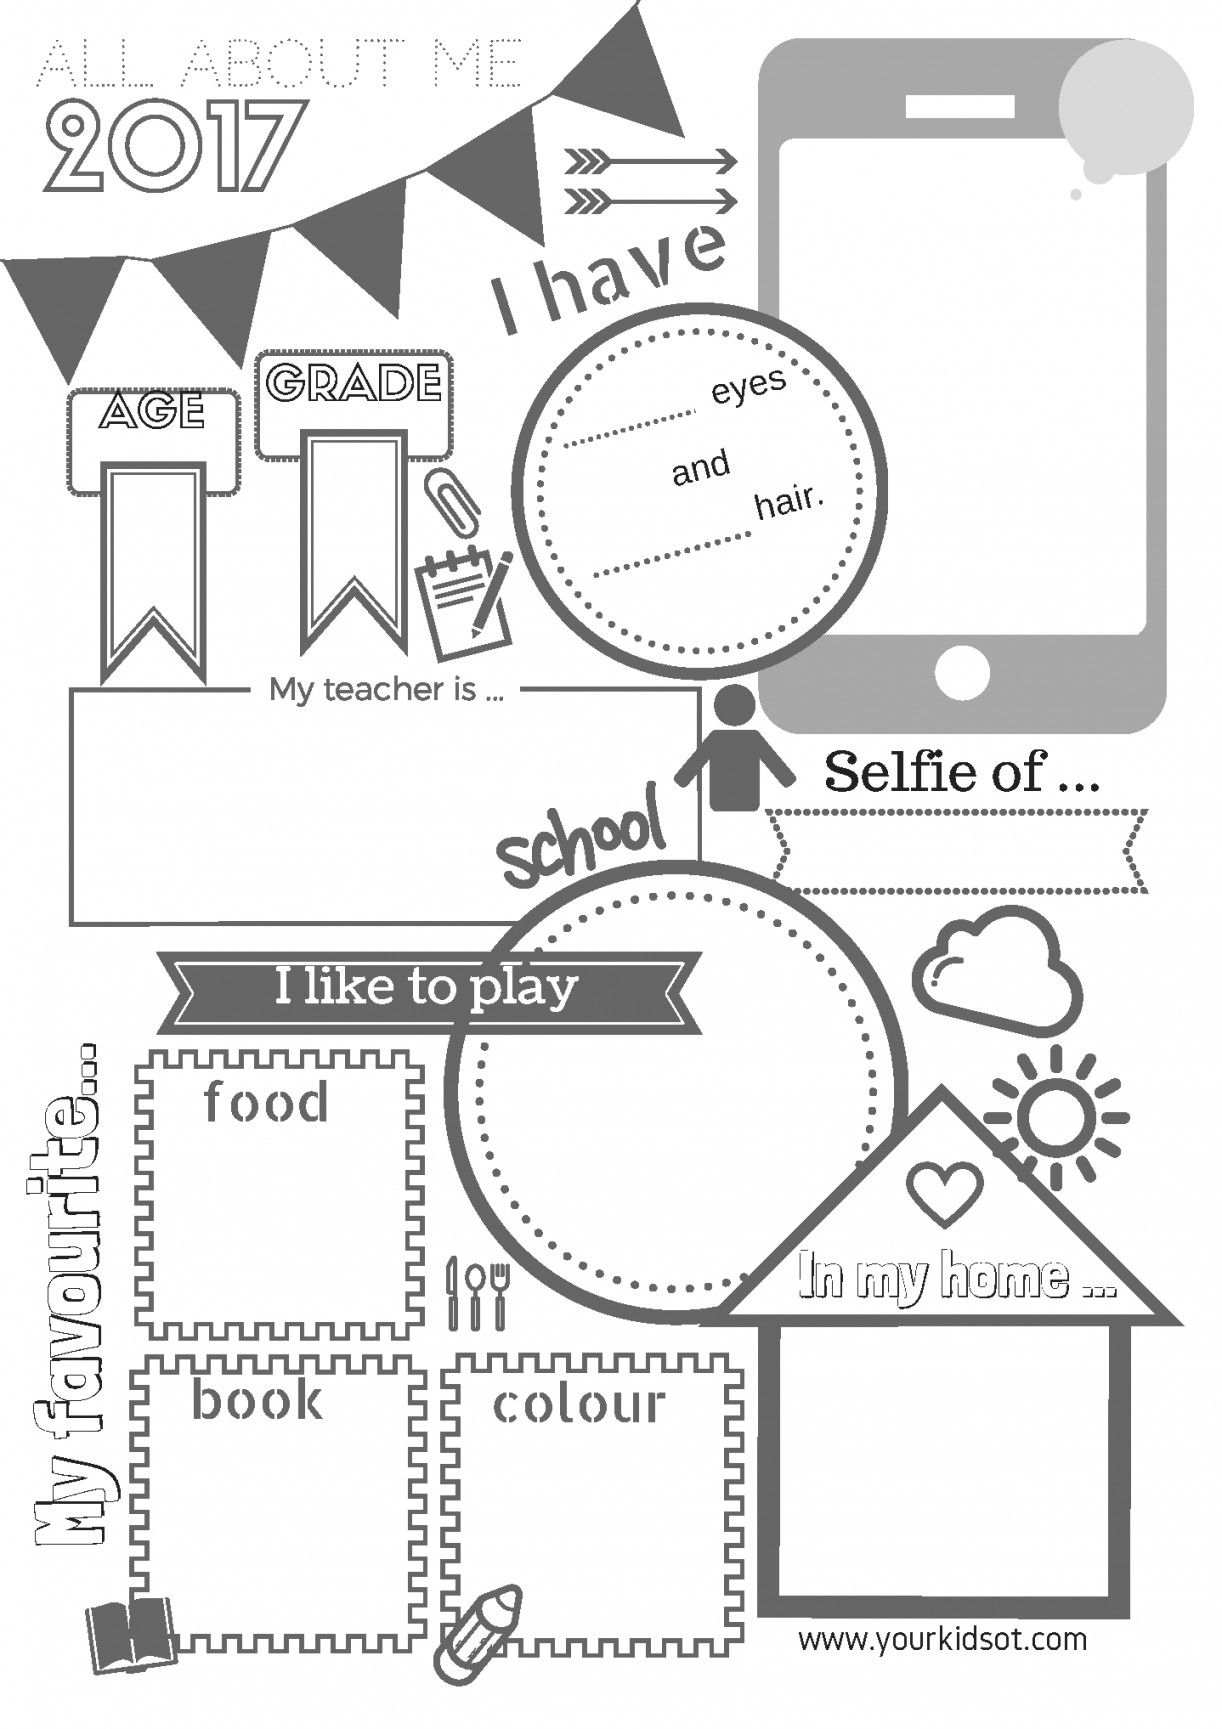 Free Printable All About Me Worksheet | Lostranquillos - All About Me Free Printable